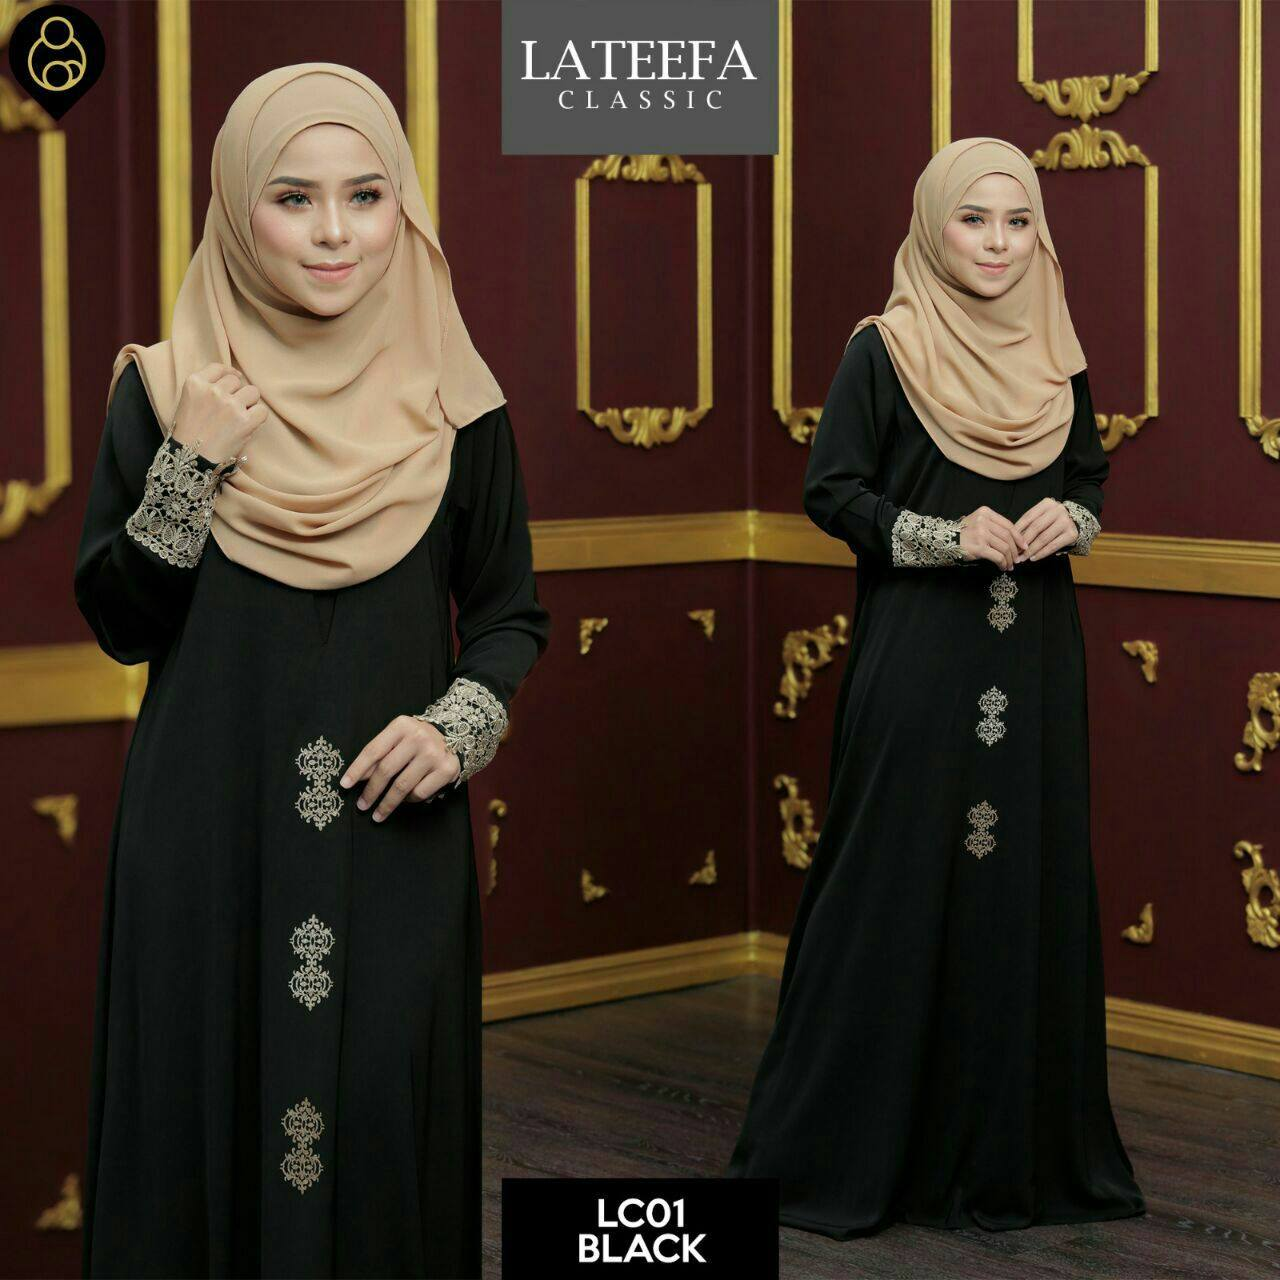 DRESS LATEEFA FURSAN LC01 BLACK